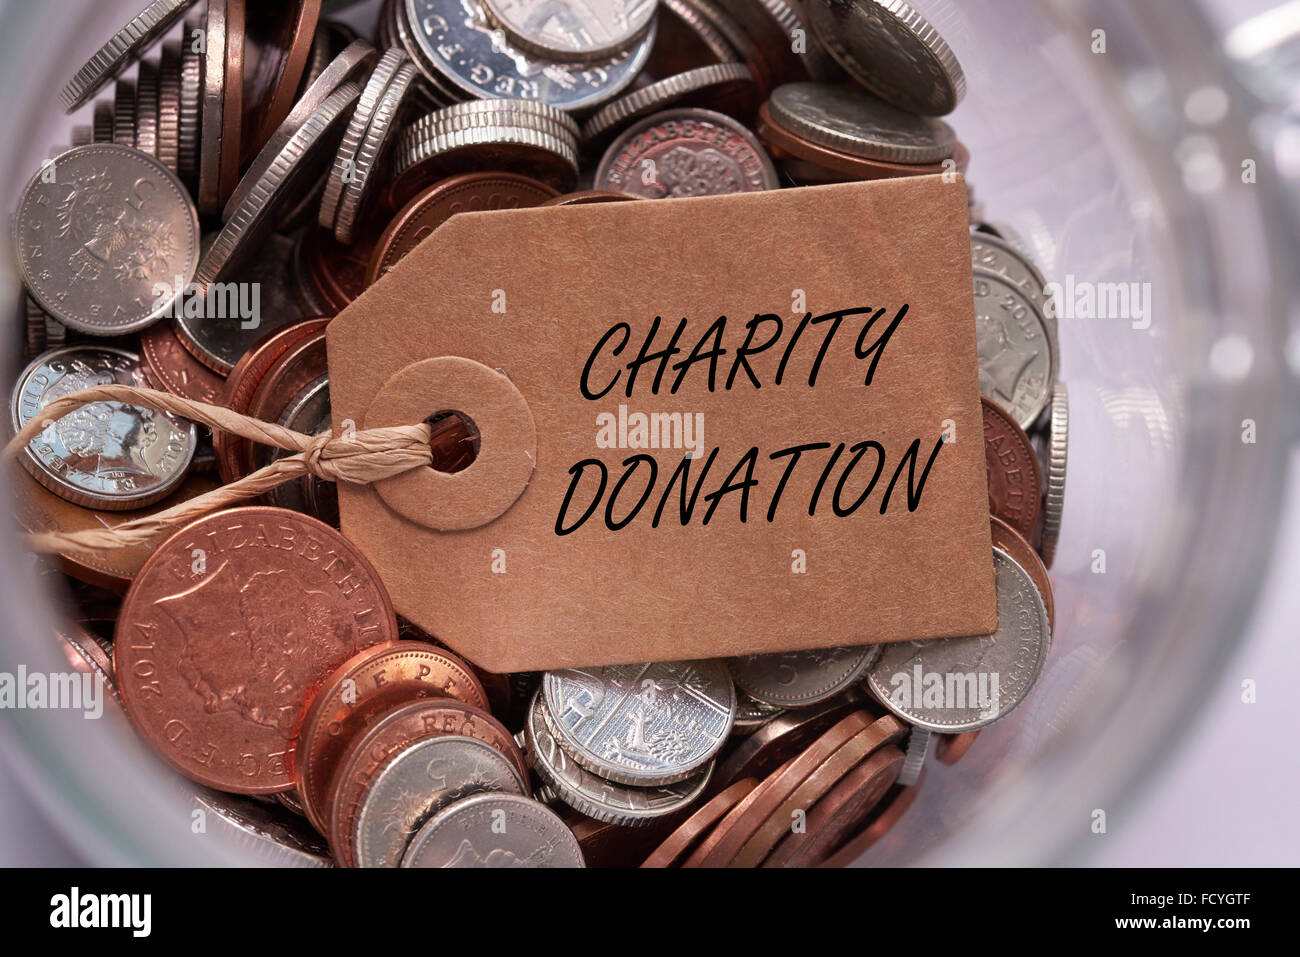 charity donation label on british mixed coins inside a glass jar